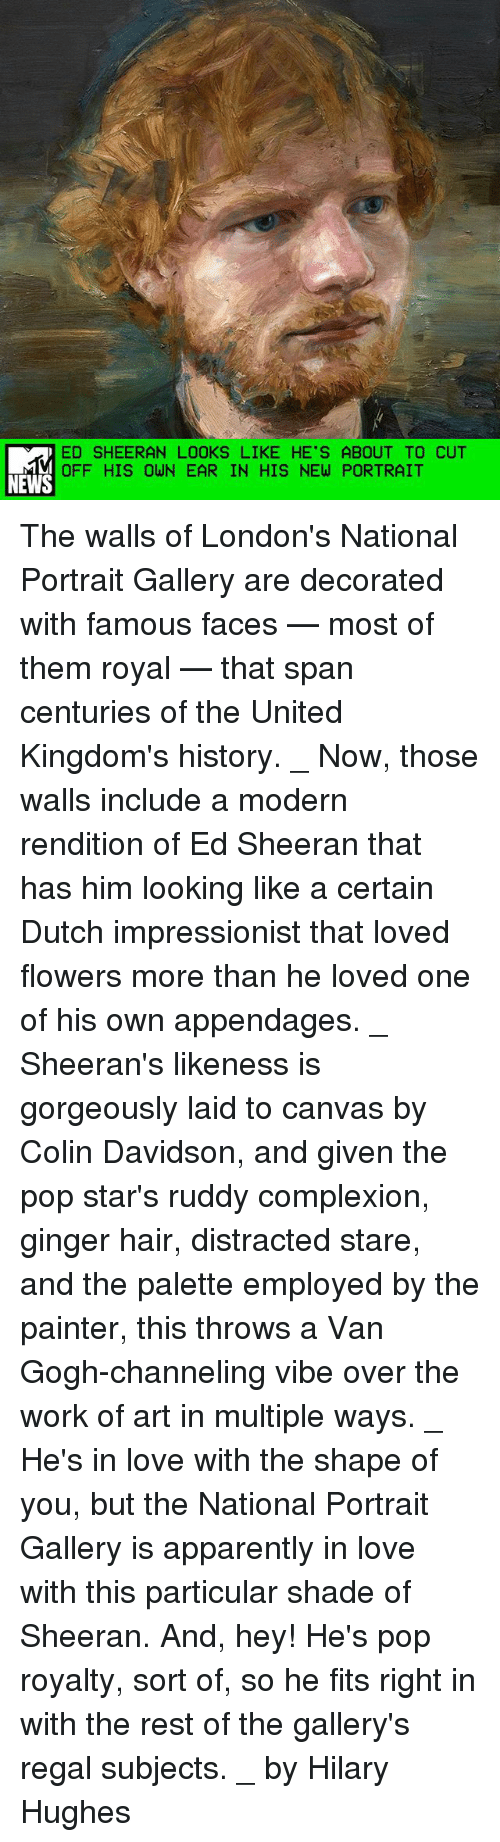 Shape Of You: ED SHEERAN LOOKS LIKE HE'S ABOUT TO CUT  OFF HIS OWN EAR IN HIS NEW PORTRAIT  NEWS The walls of London's National Portrait Gallery are decorated with famous faces — most of them royal — that span centuries of the United Kingdom's history. _ Now, those walls include a modern rendition of Ed Sheeran that has him looking like a certain Dutch impressionist that loved flowers more than he loved one of his own appendages. _ Sheeran's likeness is gorgeously laid to canvas by Colin Davidson, and given the pop star's ruddy complexion, ginger hair, distracted stare, and the palette employed by the painter, this throws a Van Gogh-channeling vibe over the work of art in multiple ways. _ He's in love with the shape of you, but the National Portrait Gallery is apparently in love with this particular shade of Sheeran. And, hey! He's pop royalty, sort of, so he fits right in with the rest of the gallery's regal subjects. _ by Hilary Hughes